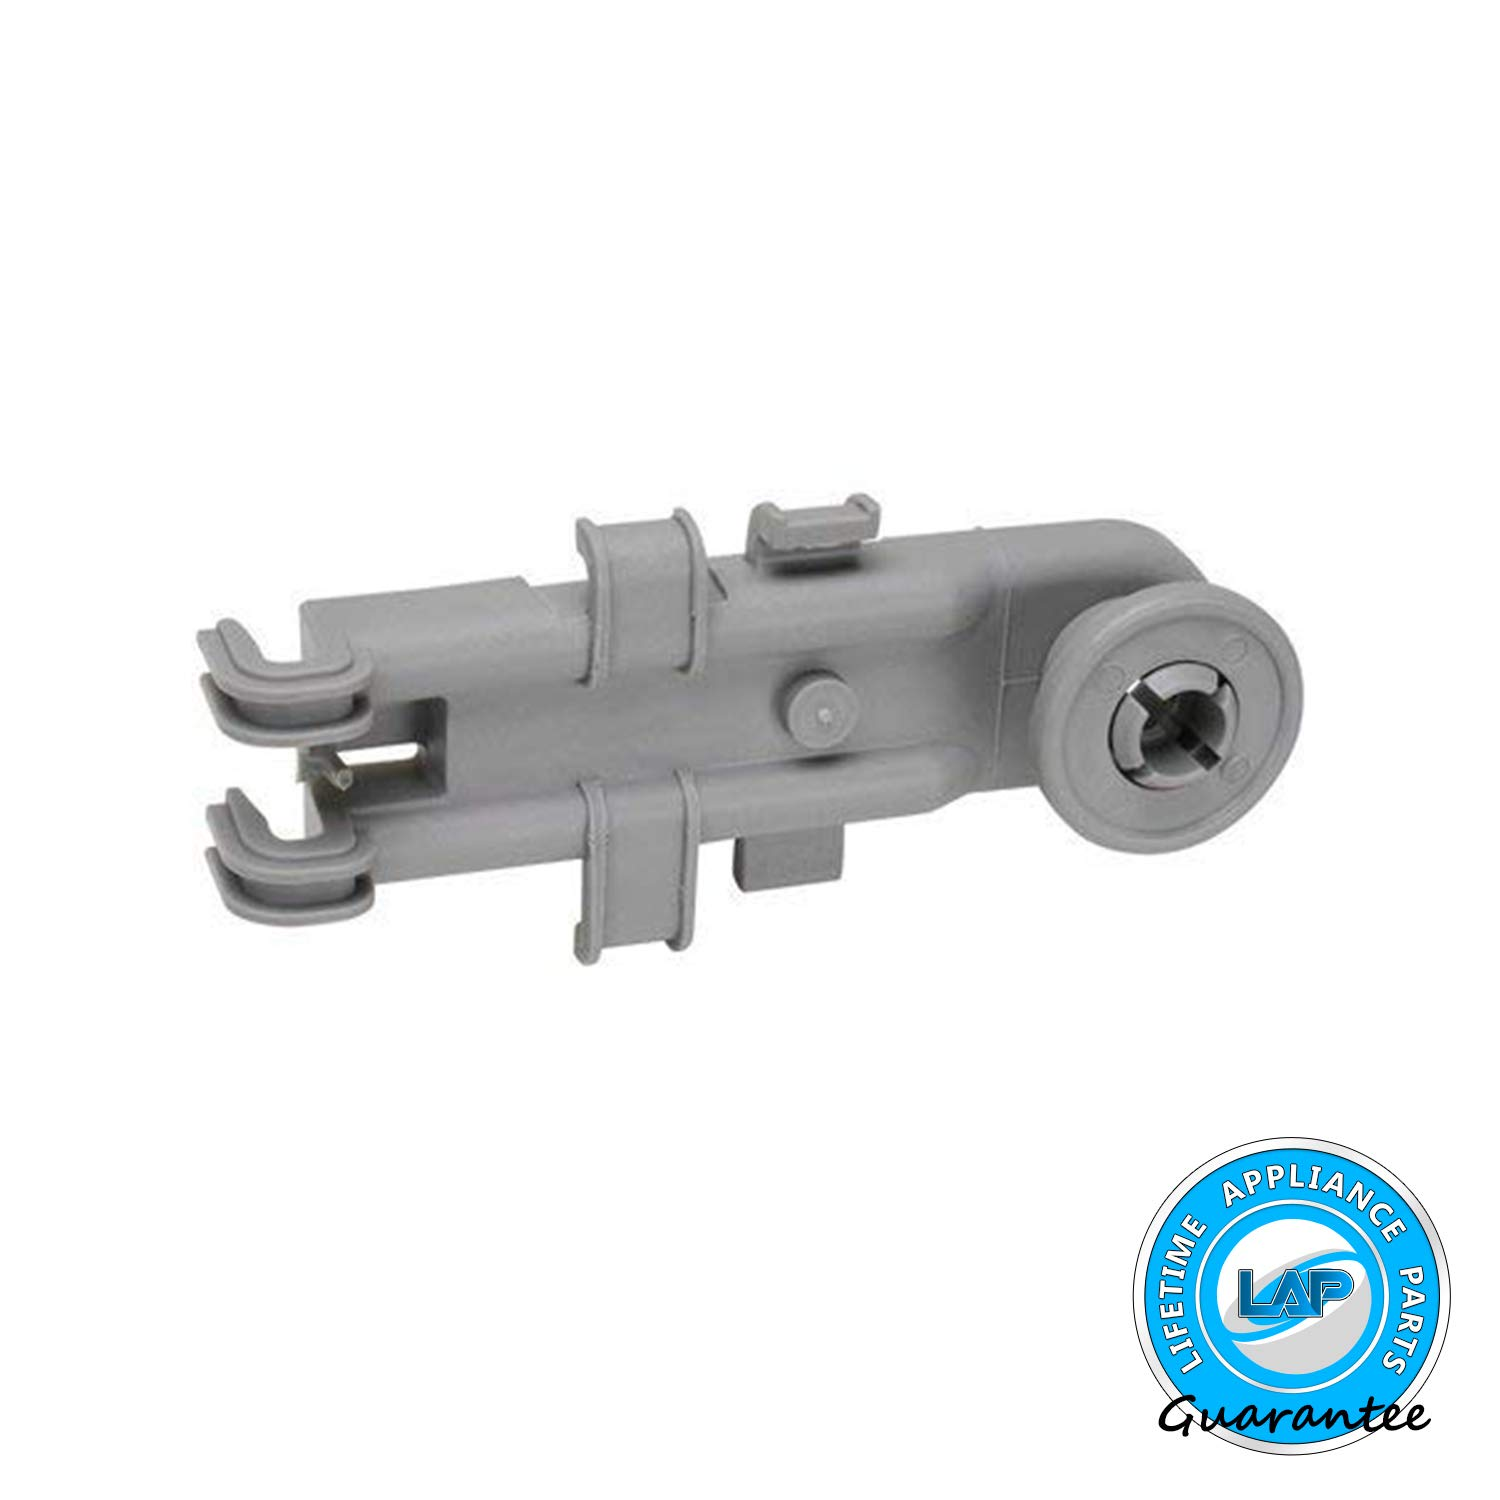 Ultra Durable 8268743 Upper Rack Wheel for Whirlpool Dishwasher